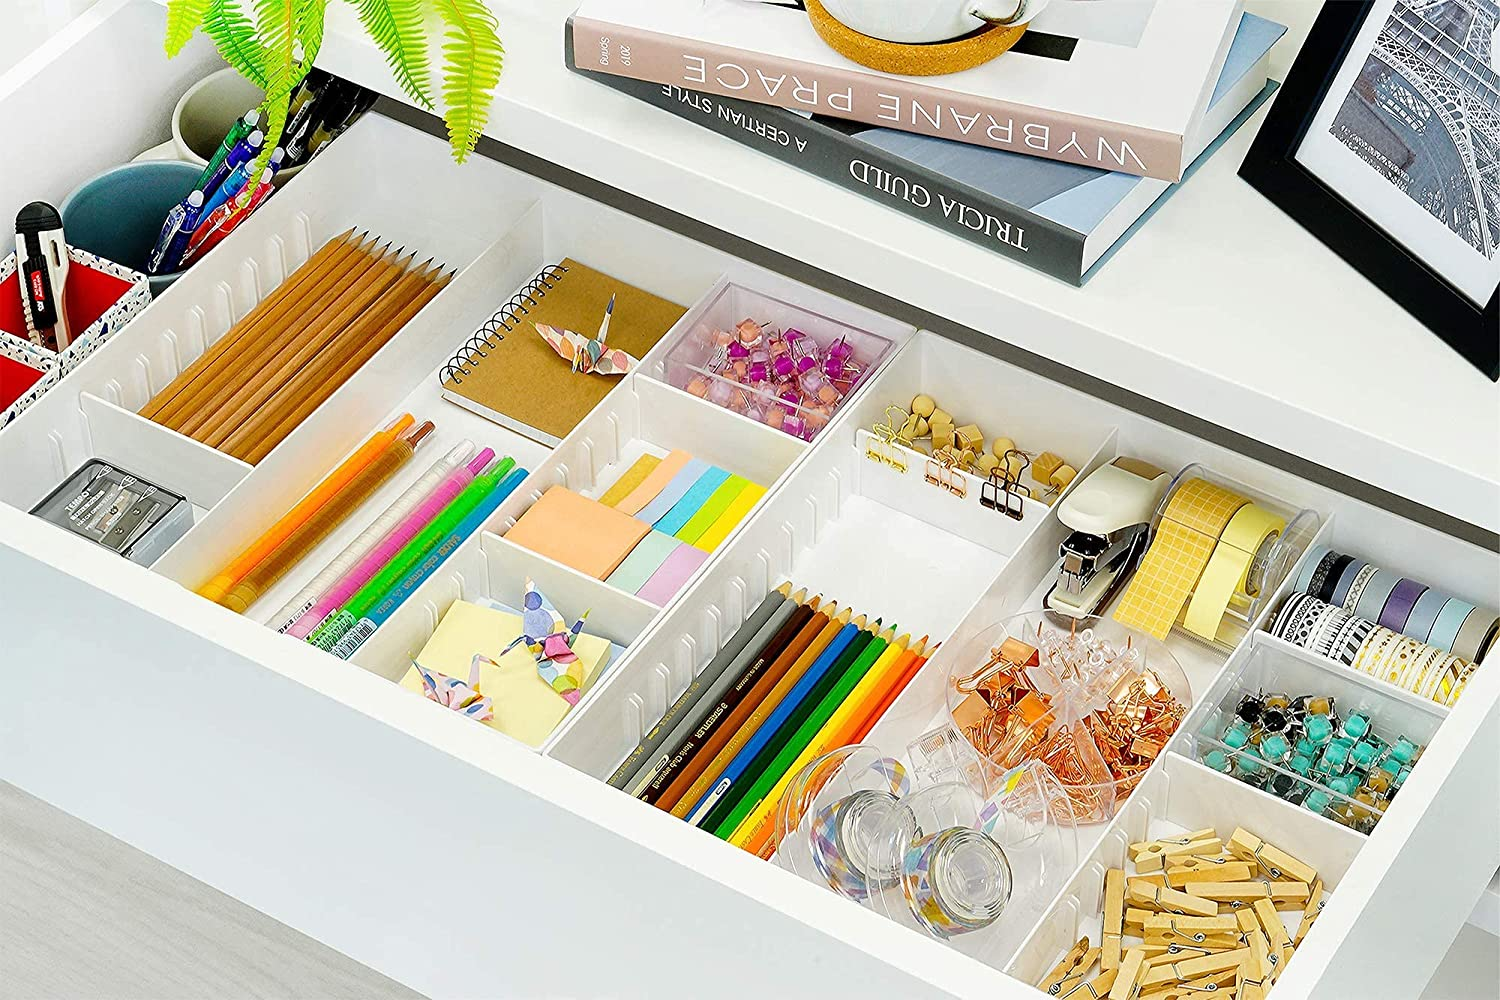 5-Minute Ideas to Organize Your Space